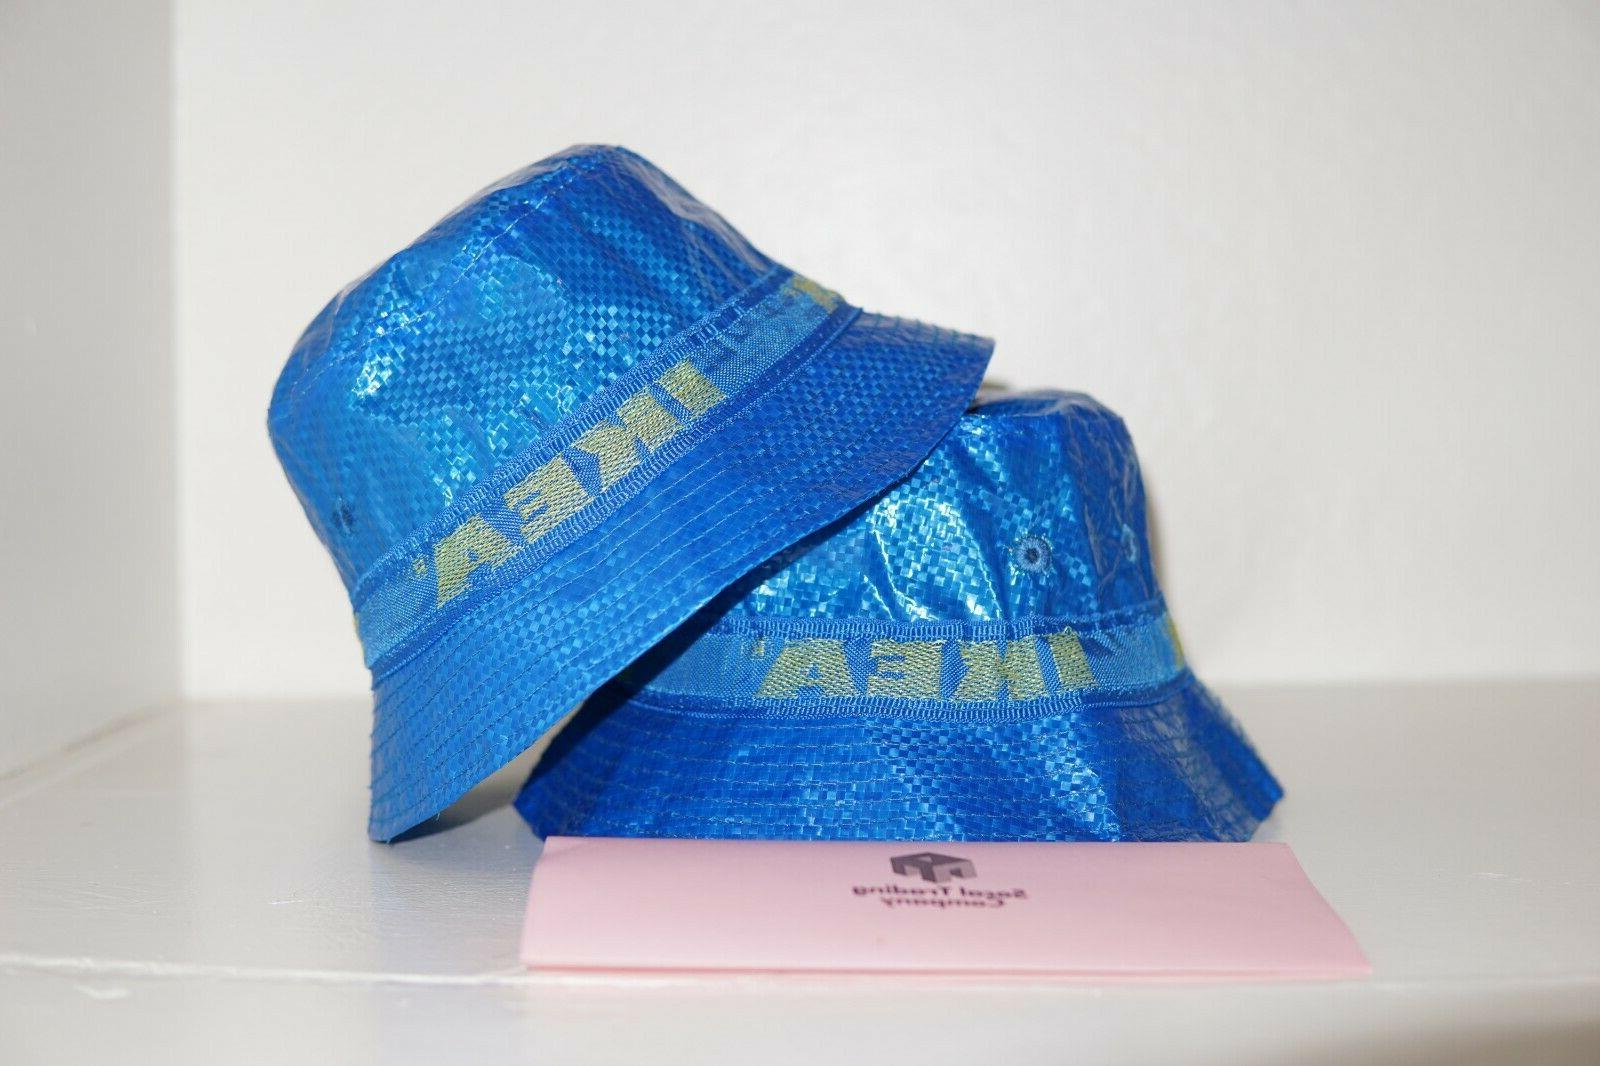 IKEA Bucket Hat KNORVA Frakta Blue Kangol Rain Fisherman Hat